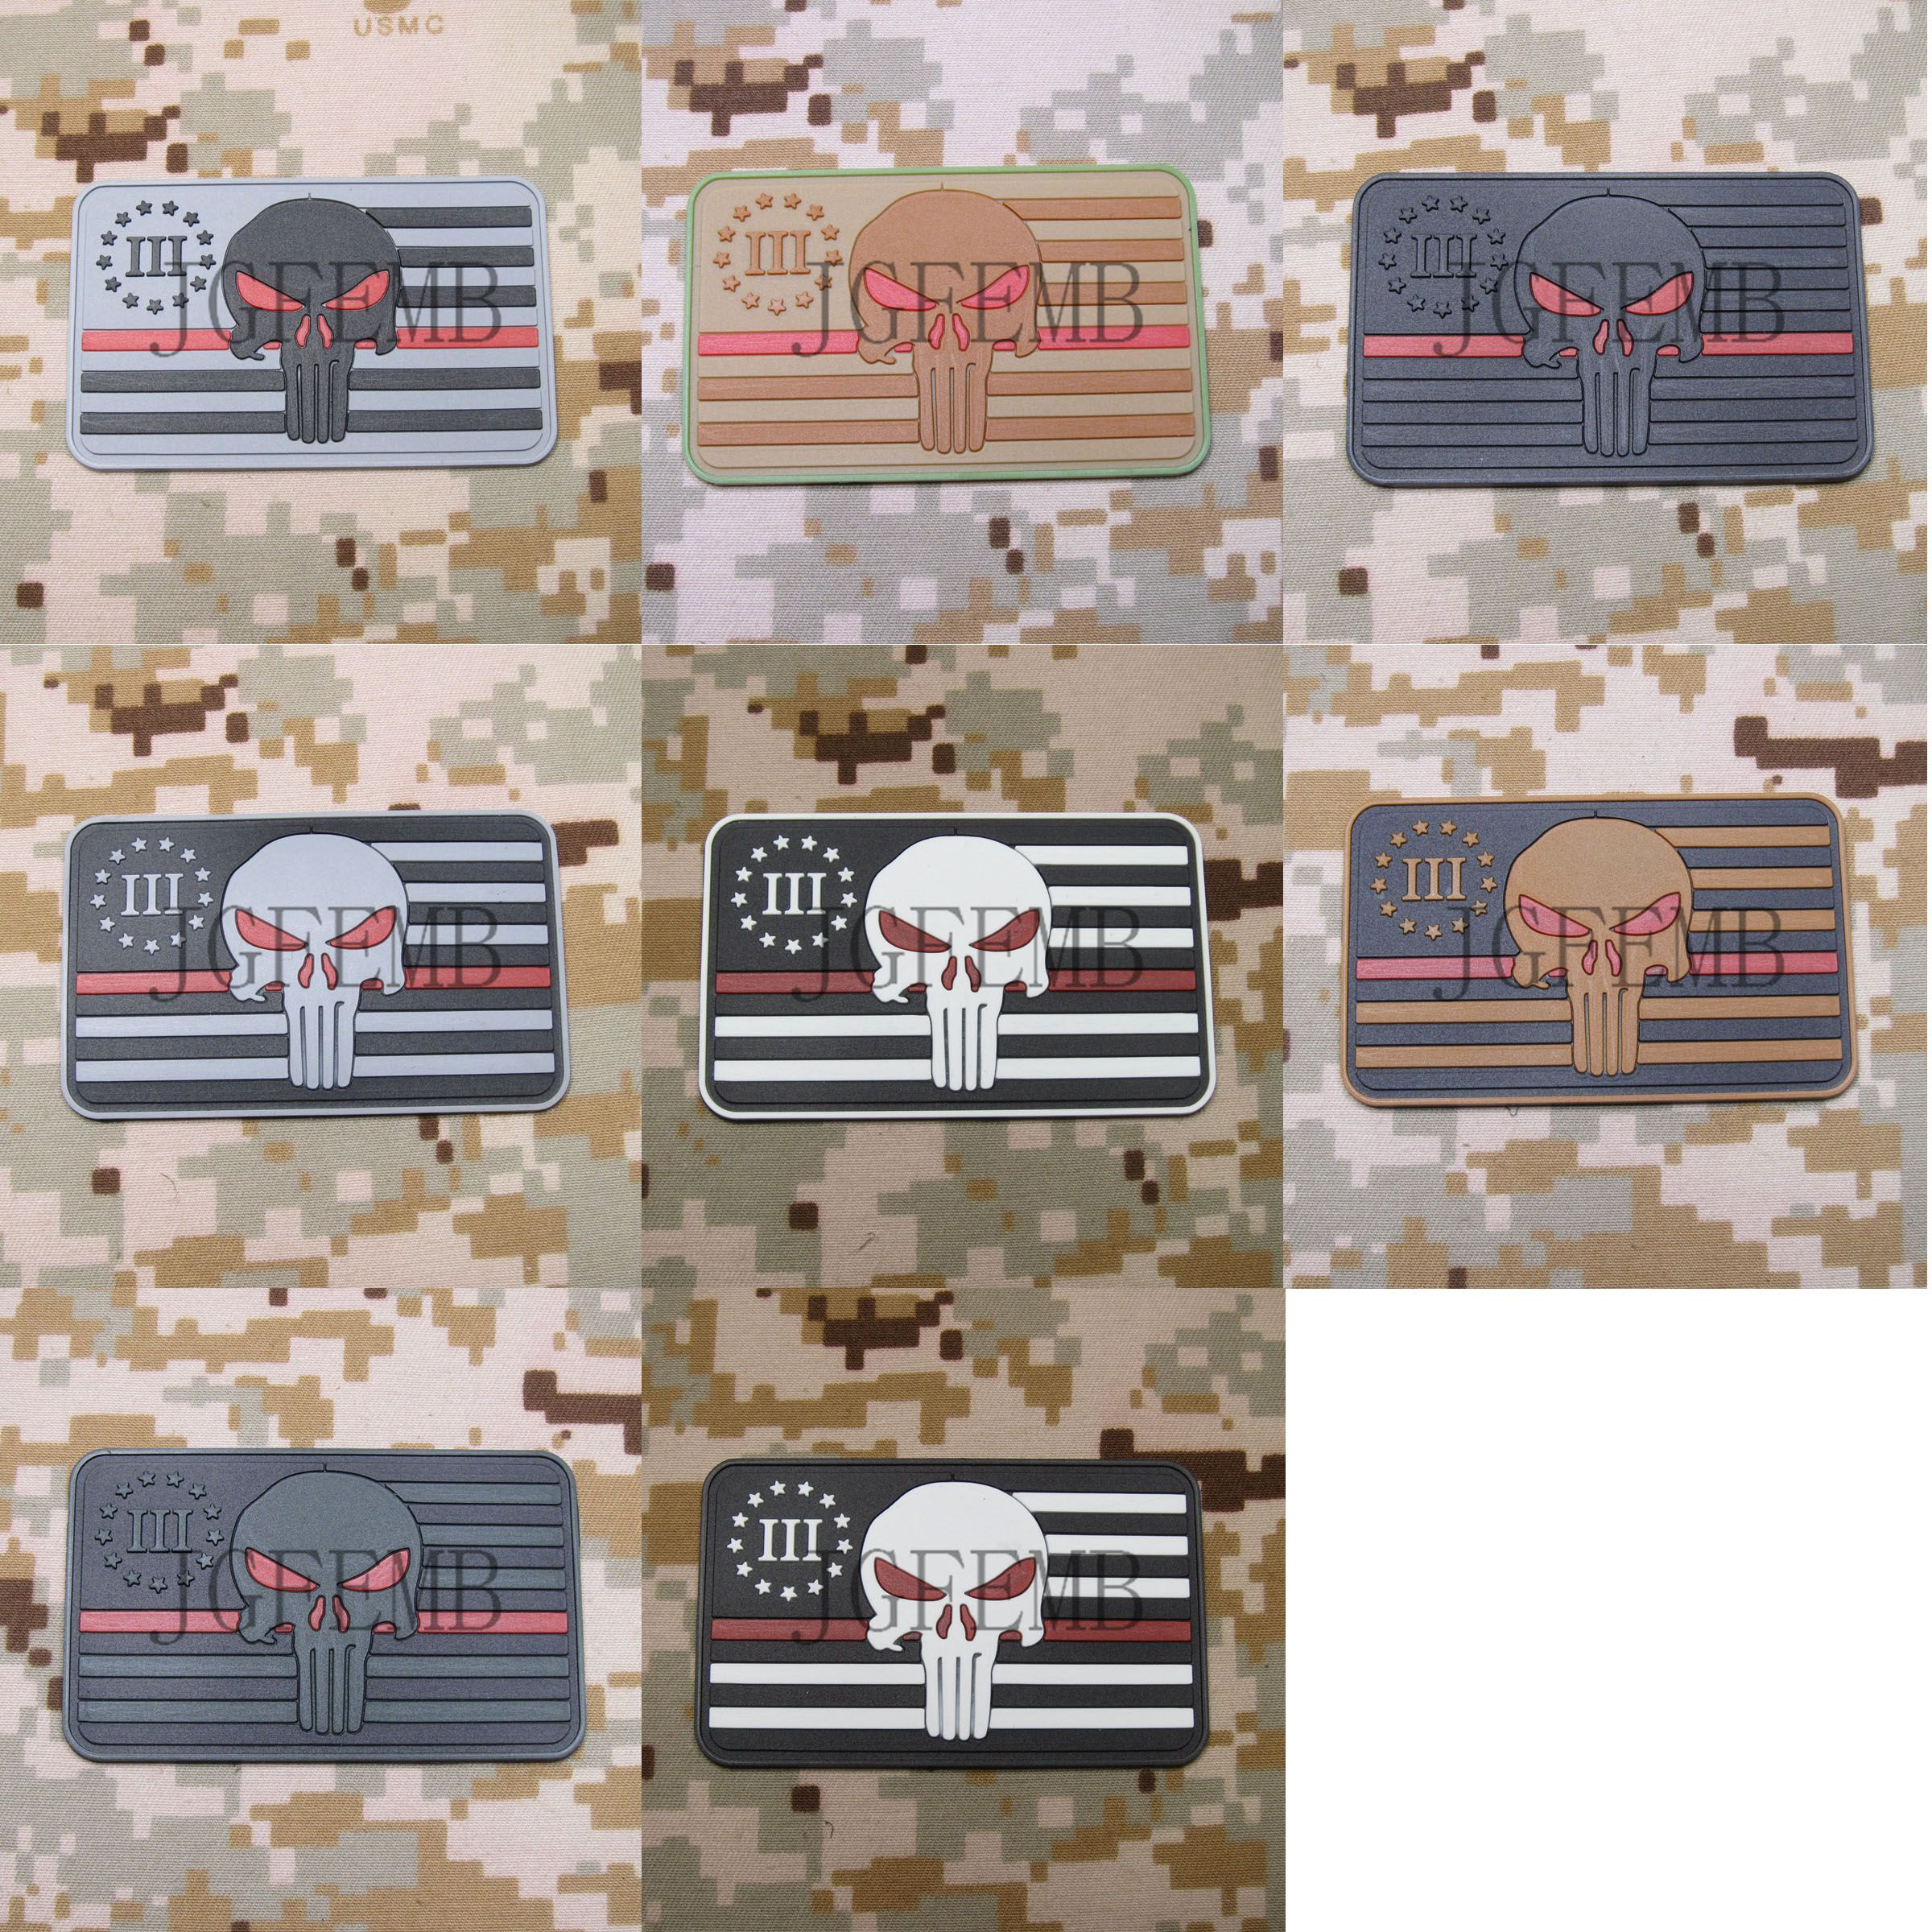 The Thin Red Line 3% III PERCENT DEFEND LIBERTY SEAL TEAM Punisher American Flag 3D PVC Patch